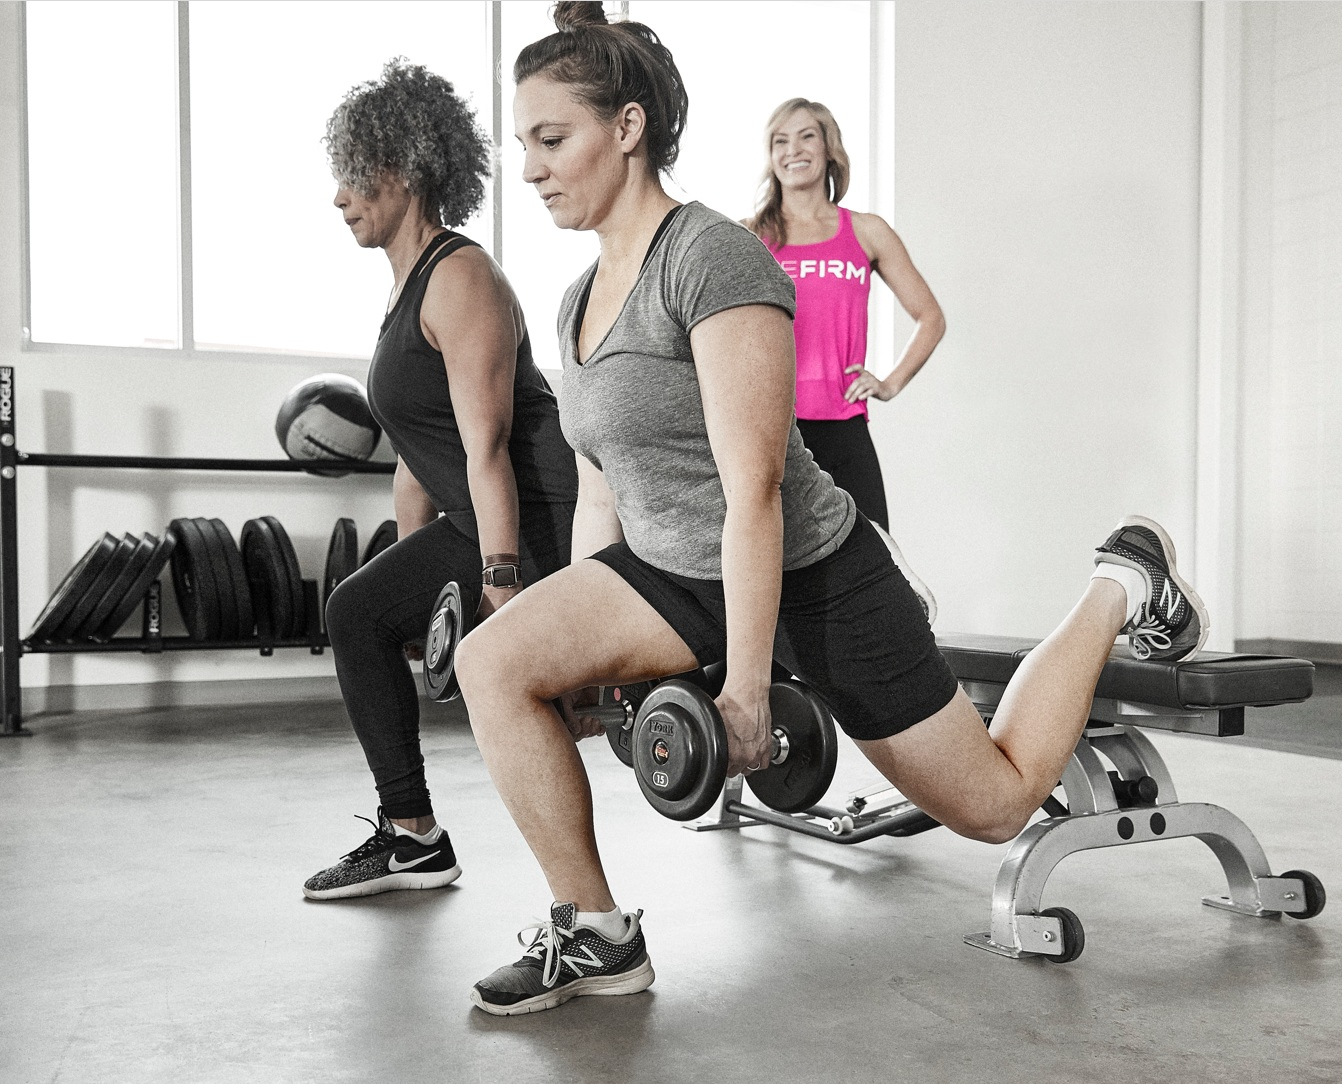 Two women work out using The Firm's state-of-the-art equipment